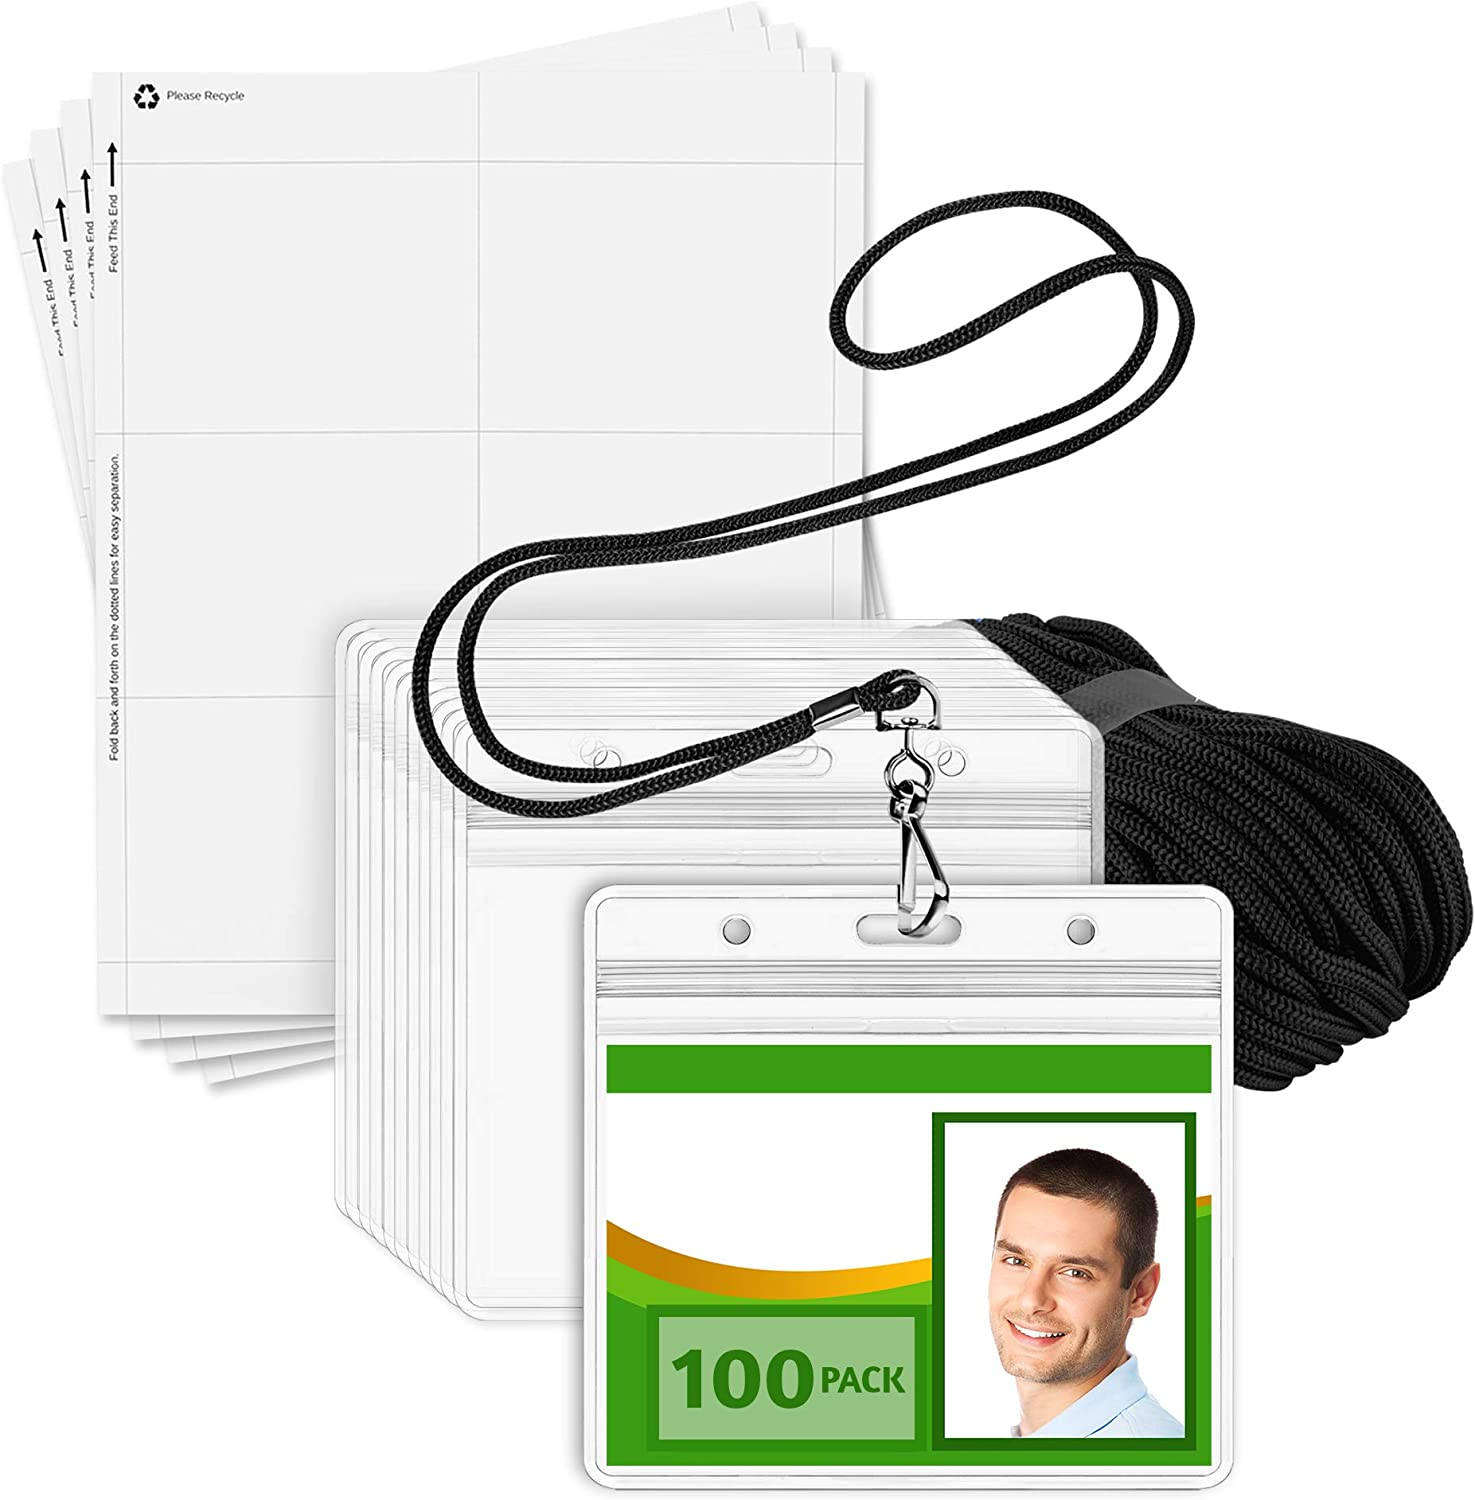 Black Lanyards, Clear 3x4 Tag Holders, 100 Pack EcoEarth ID Badge Holder with Lanyard and Paper Kit 3-Piece Set of Plastic Pouch and Name Card All-in-One Lanyard